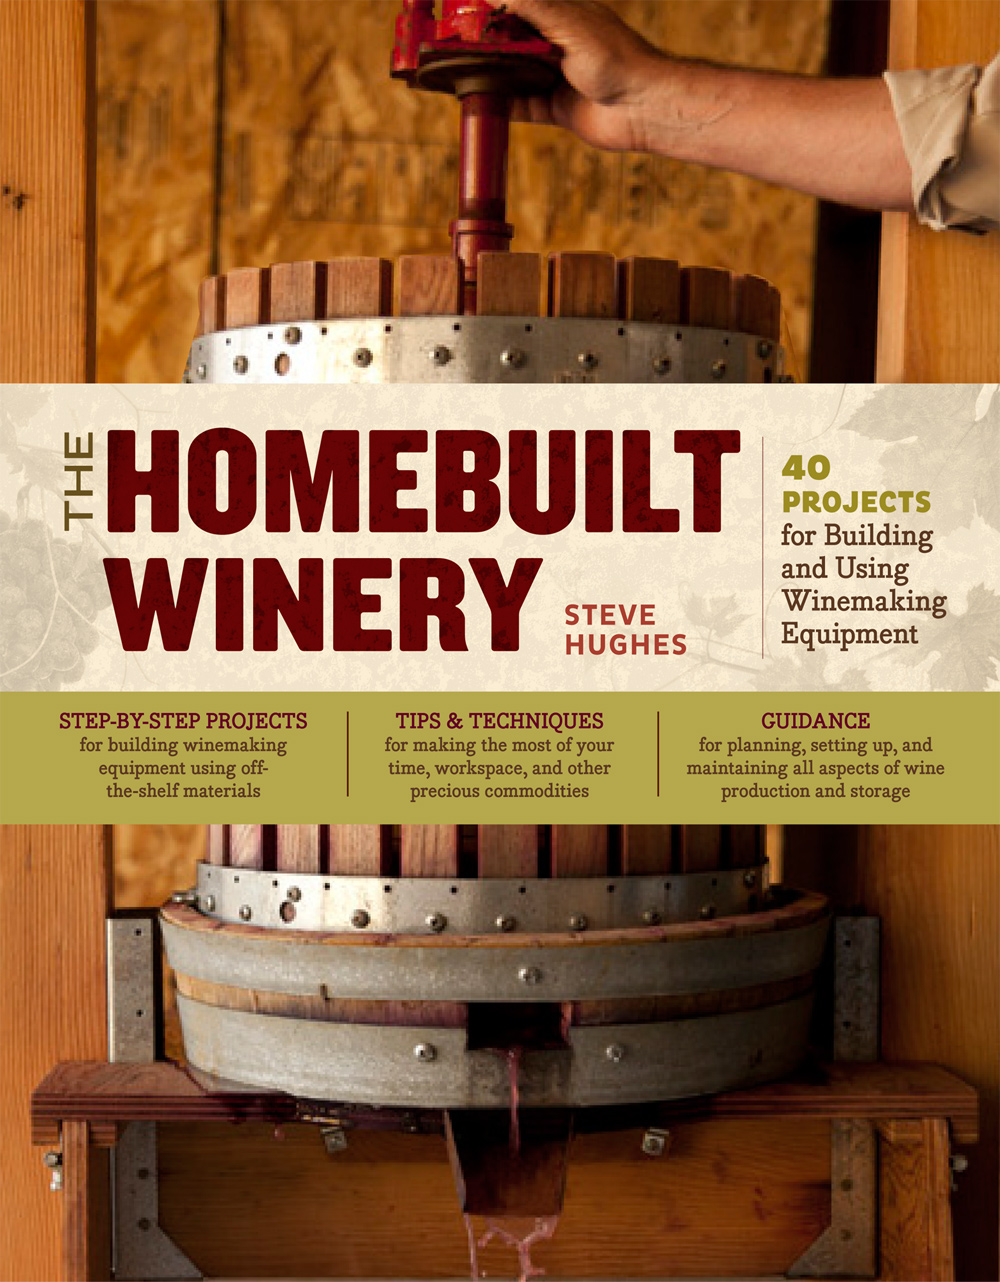 The Homebuilt Winery 43 Projects for Building and Using Winemaking Equipment - Steve Hughes